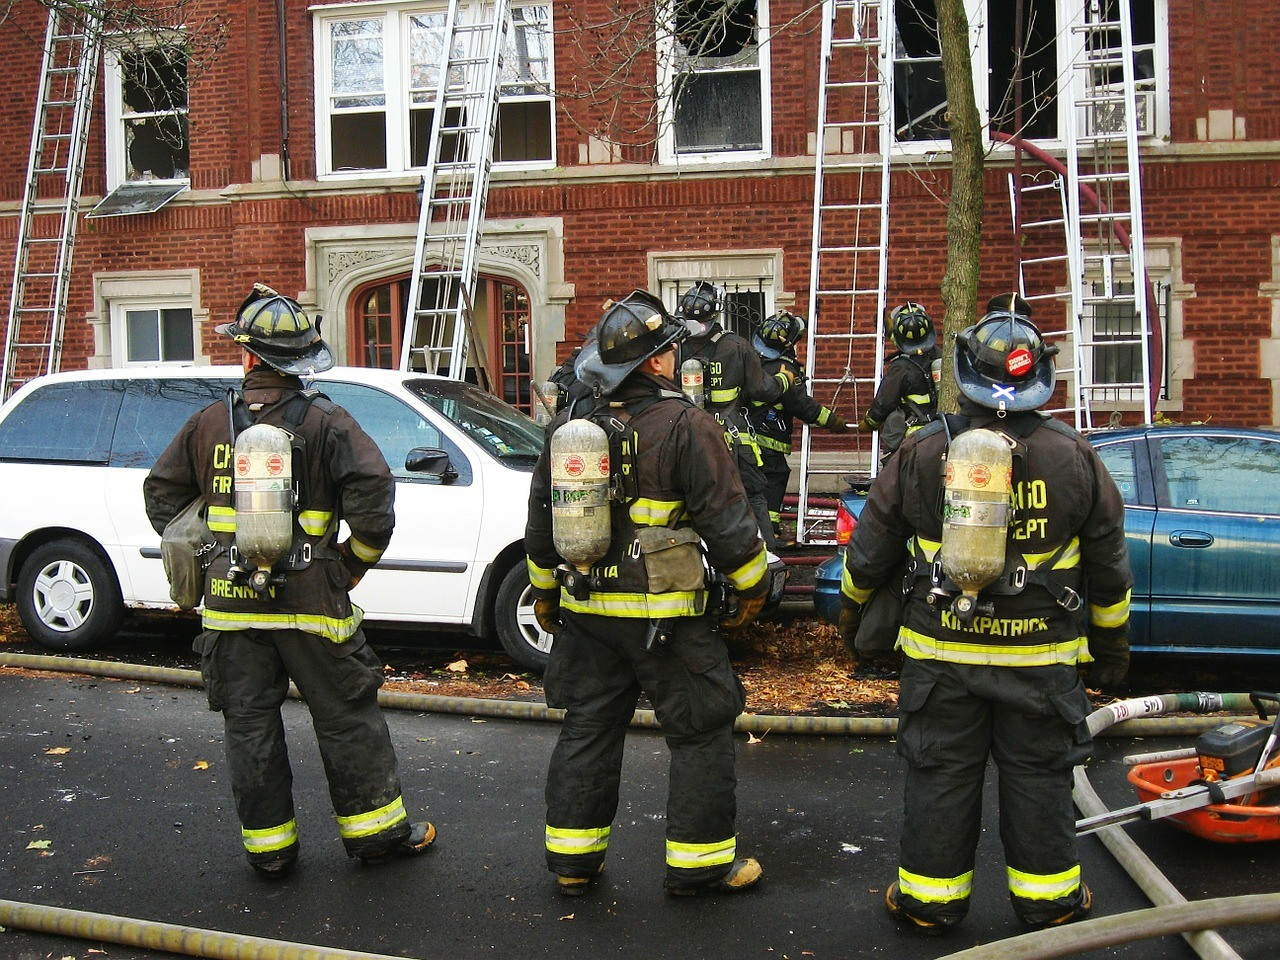 Firefighters outside a building